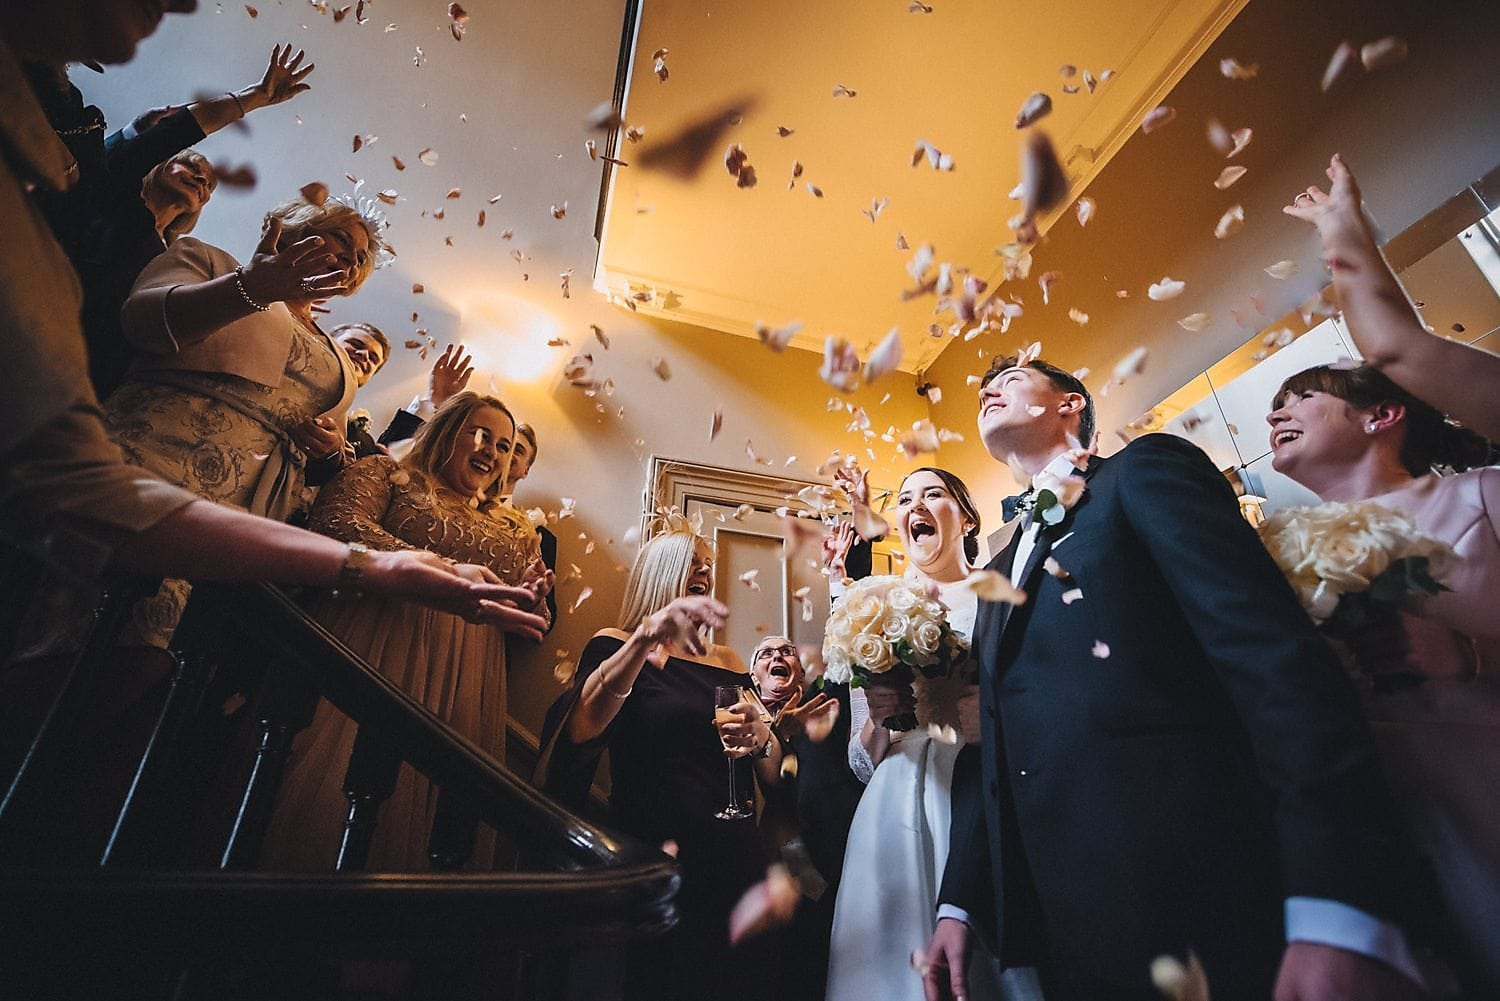 Rose petals thrown as confetti in stairwell at The Bingham